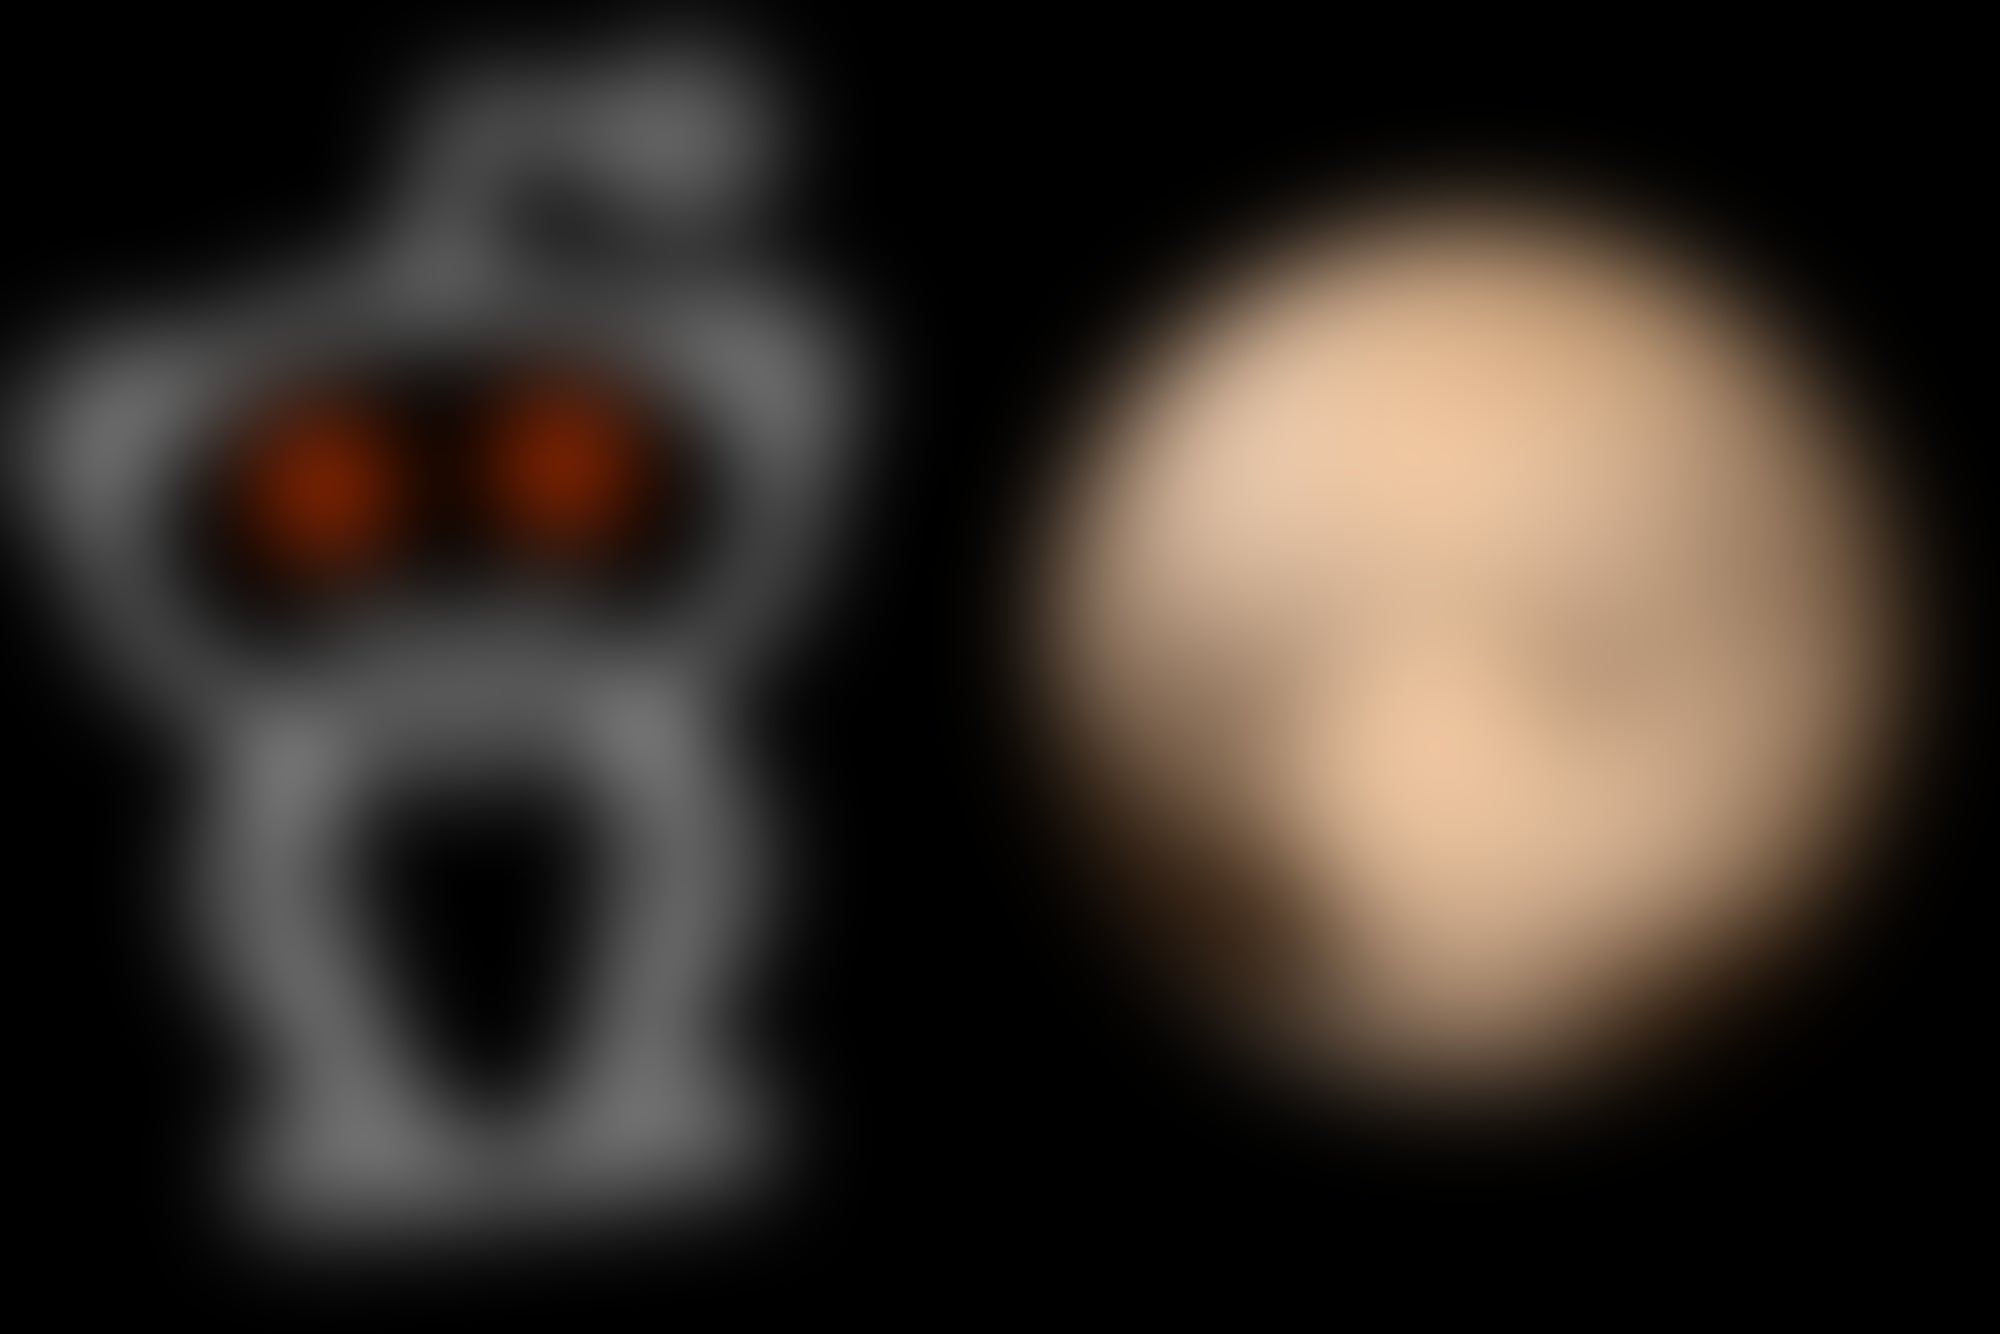 Turmoil at Reddit, and Shots of the Pluto Flyby: Weekly News